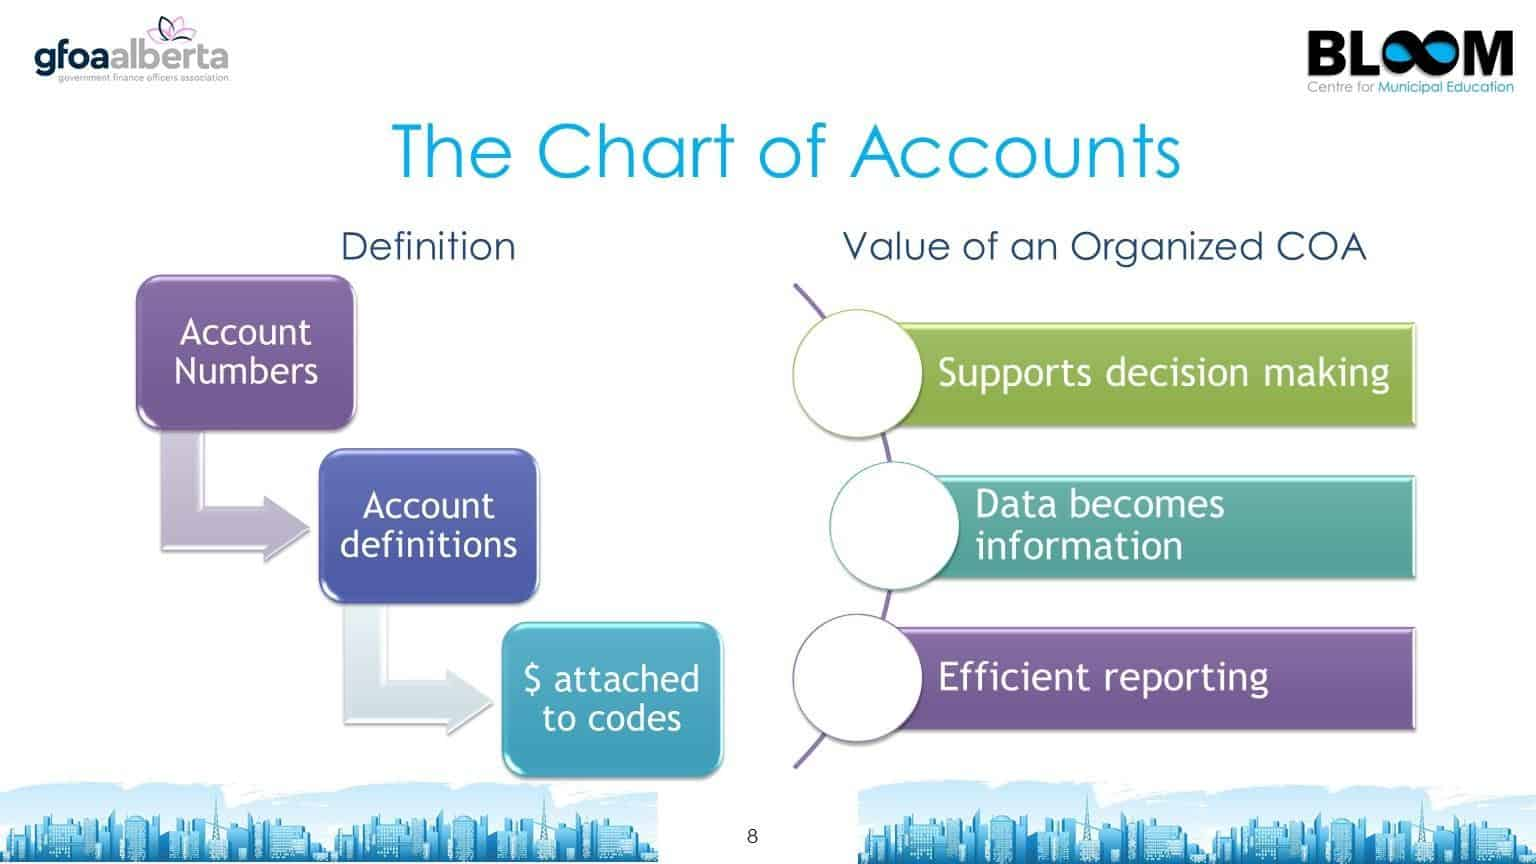 The chart of accounts